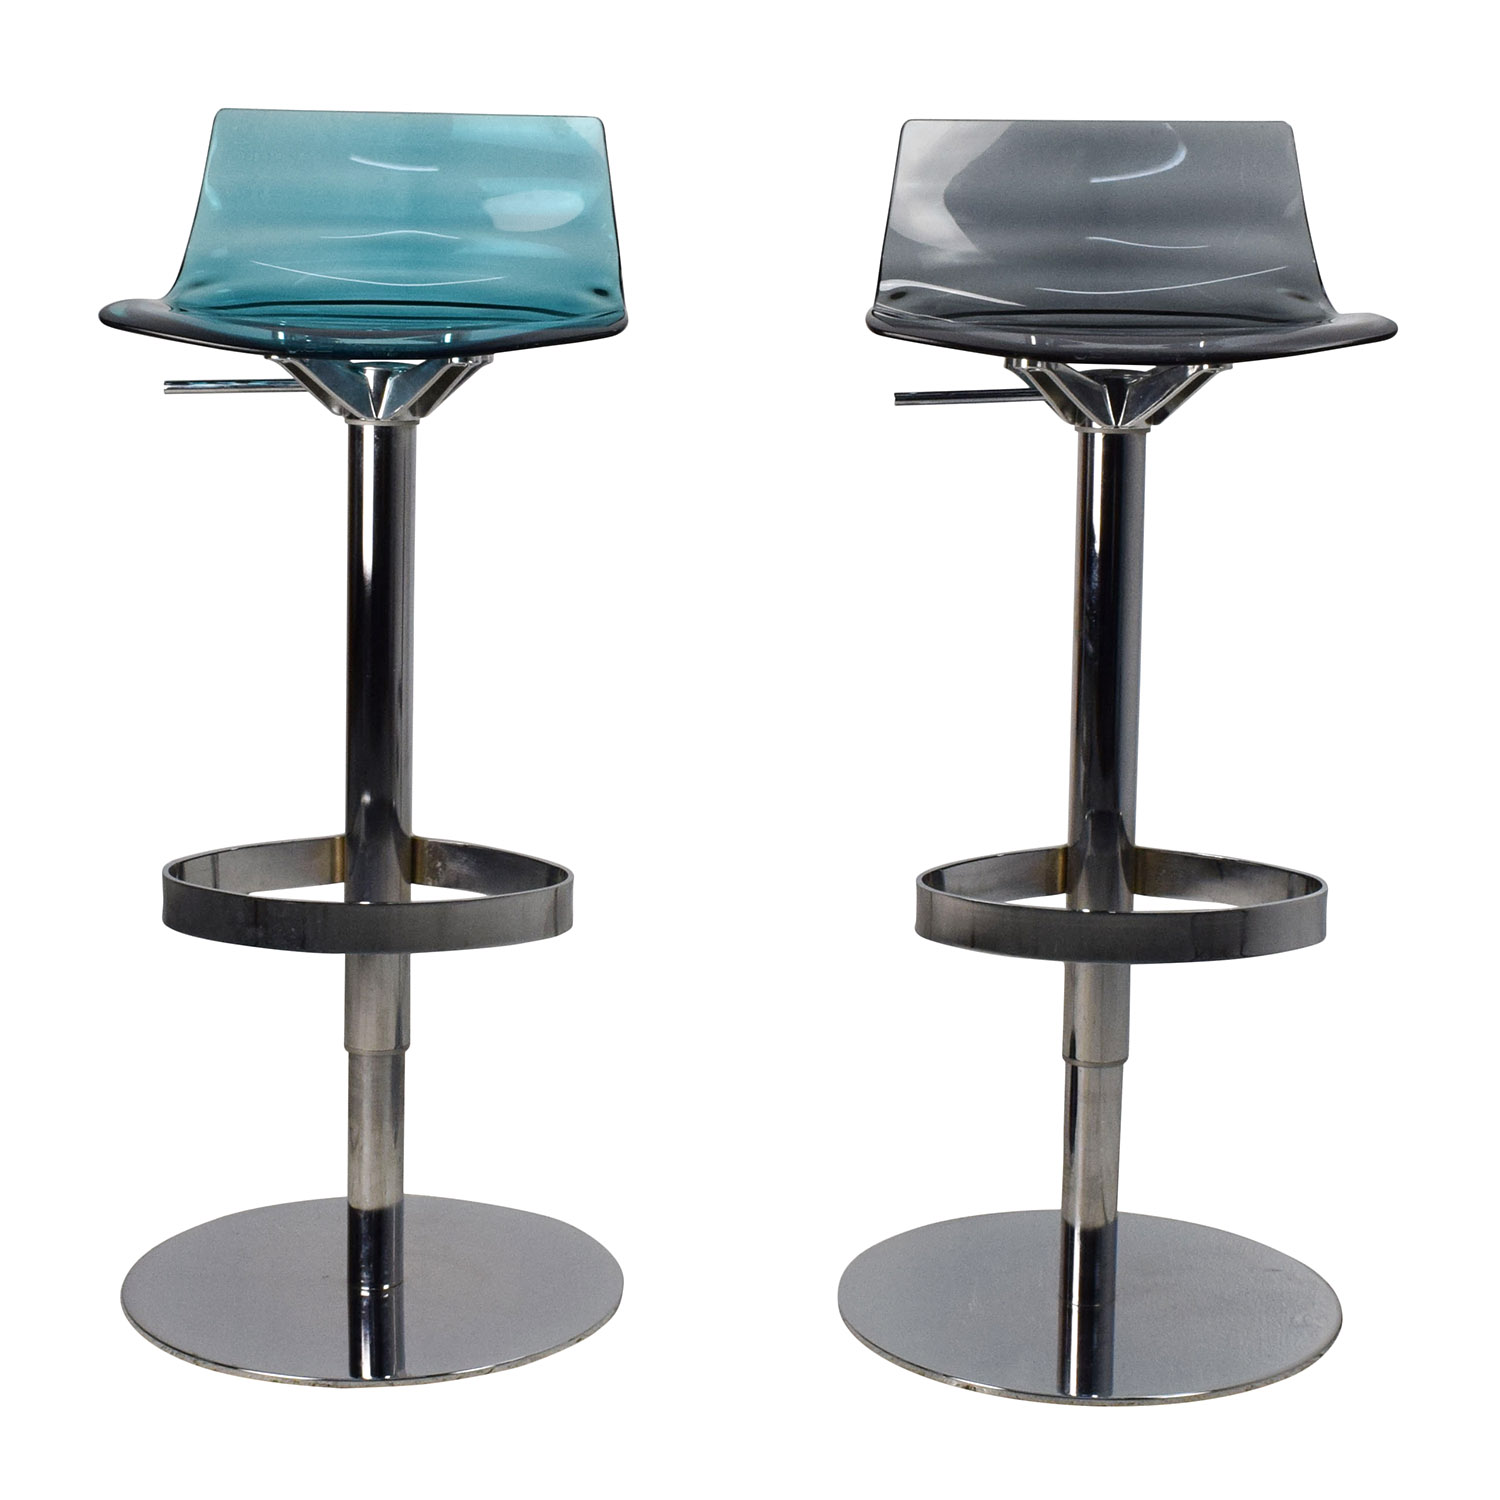 Calligaris Lu0027Eau Adjustable Swivel Bar Stool Pair / Stools  sc 1 st  Furnishare & 40% OFF - IKEA IKEA White Glen Bar Stools / Chairs islam-shia.org